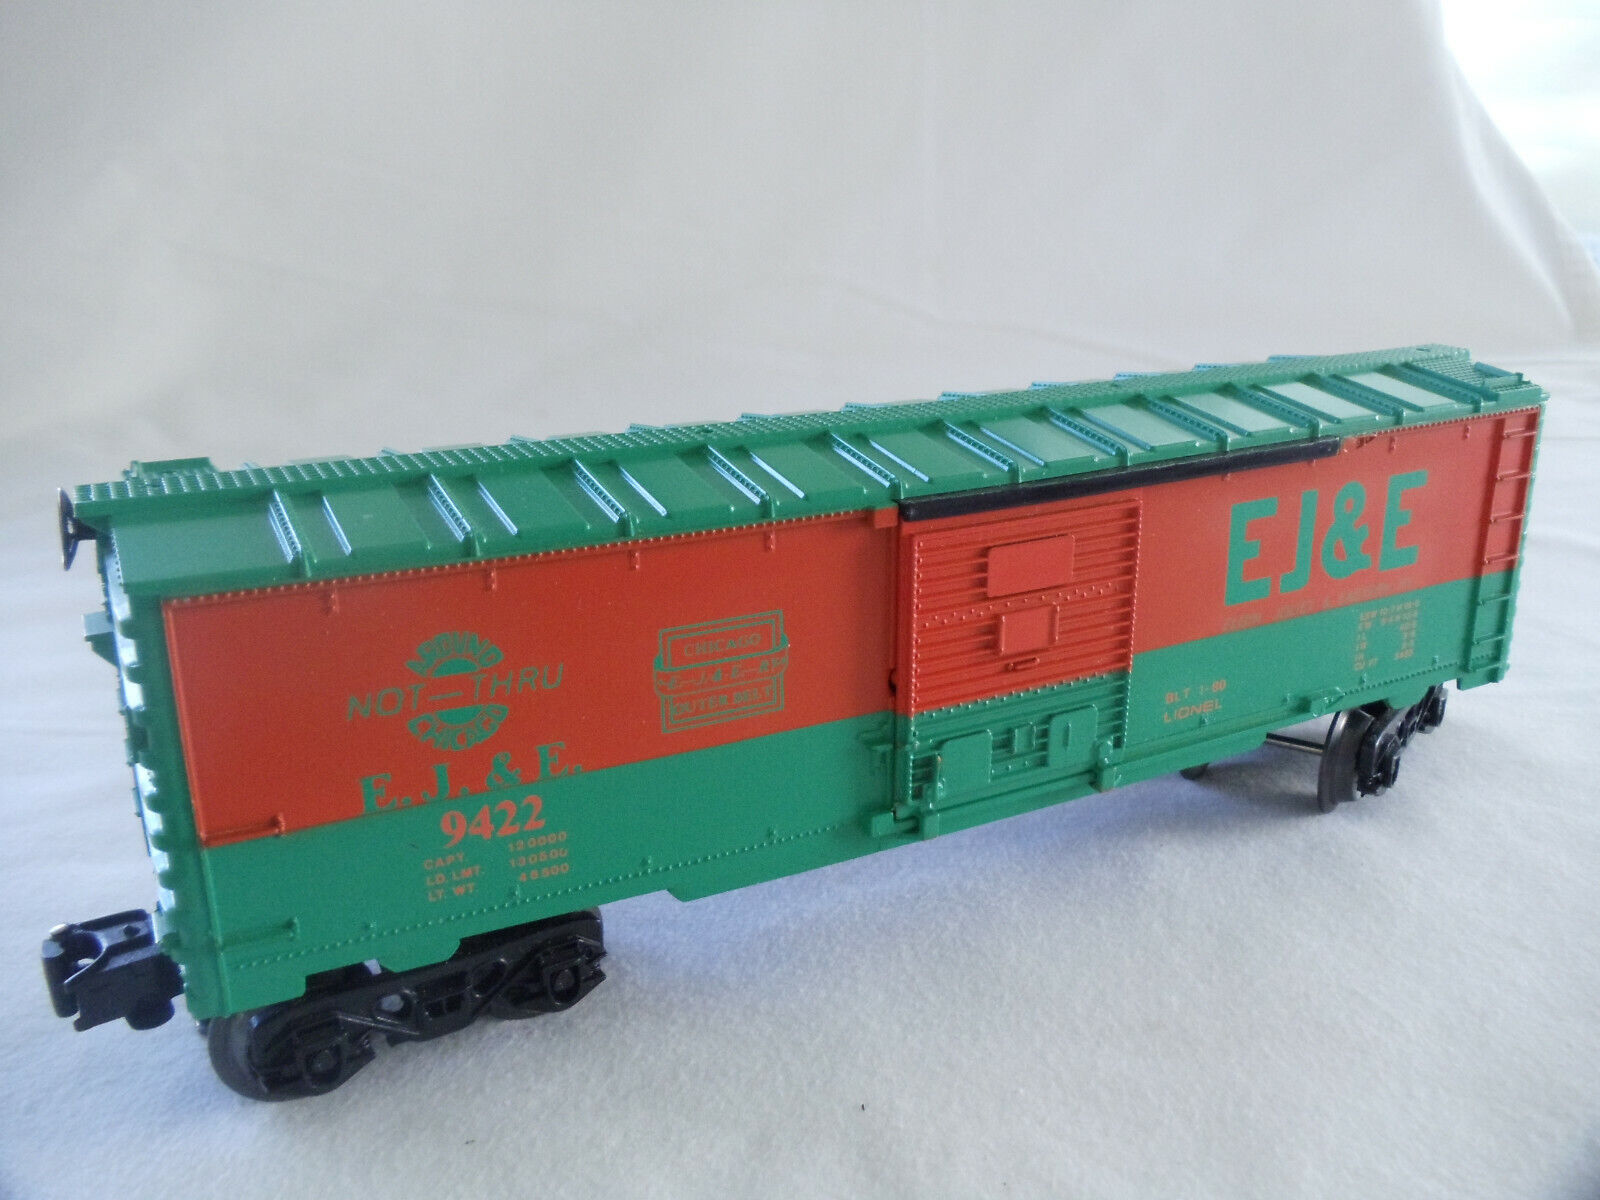 LIONEL-ELGIN,JOILET EASTERN BOXCAR USED NO BOX - $7.50